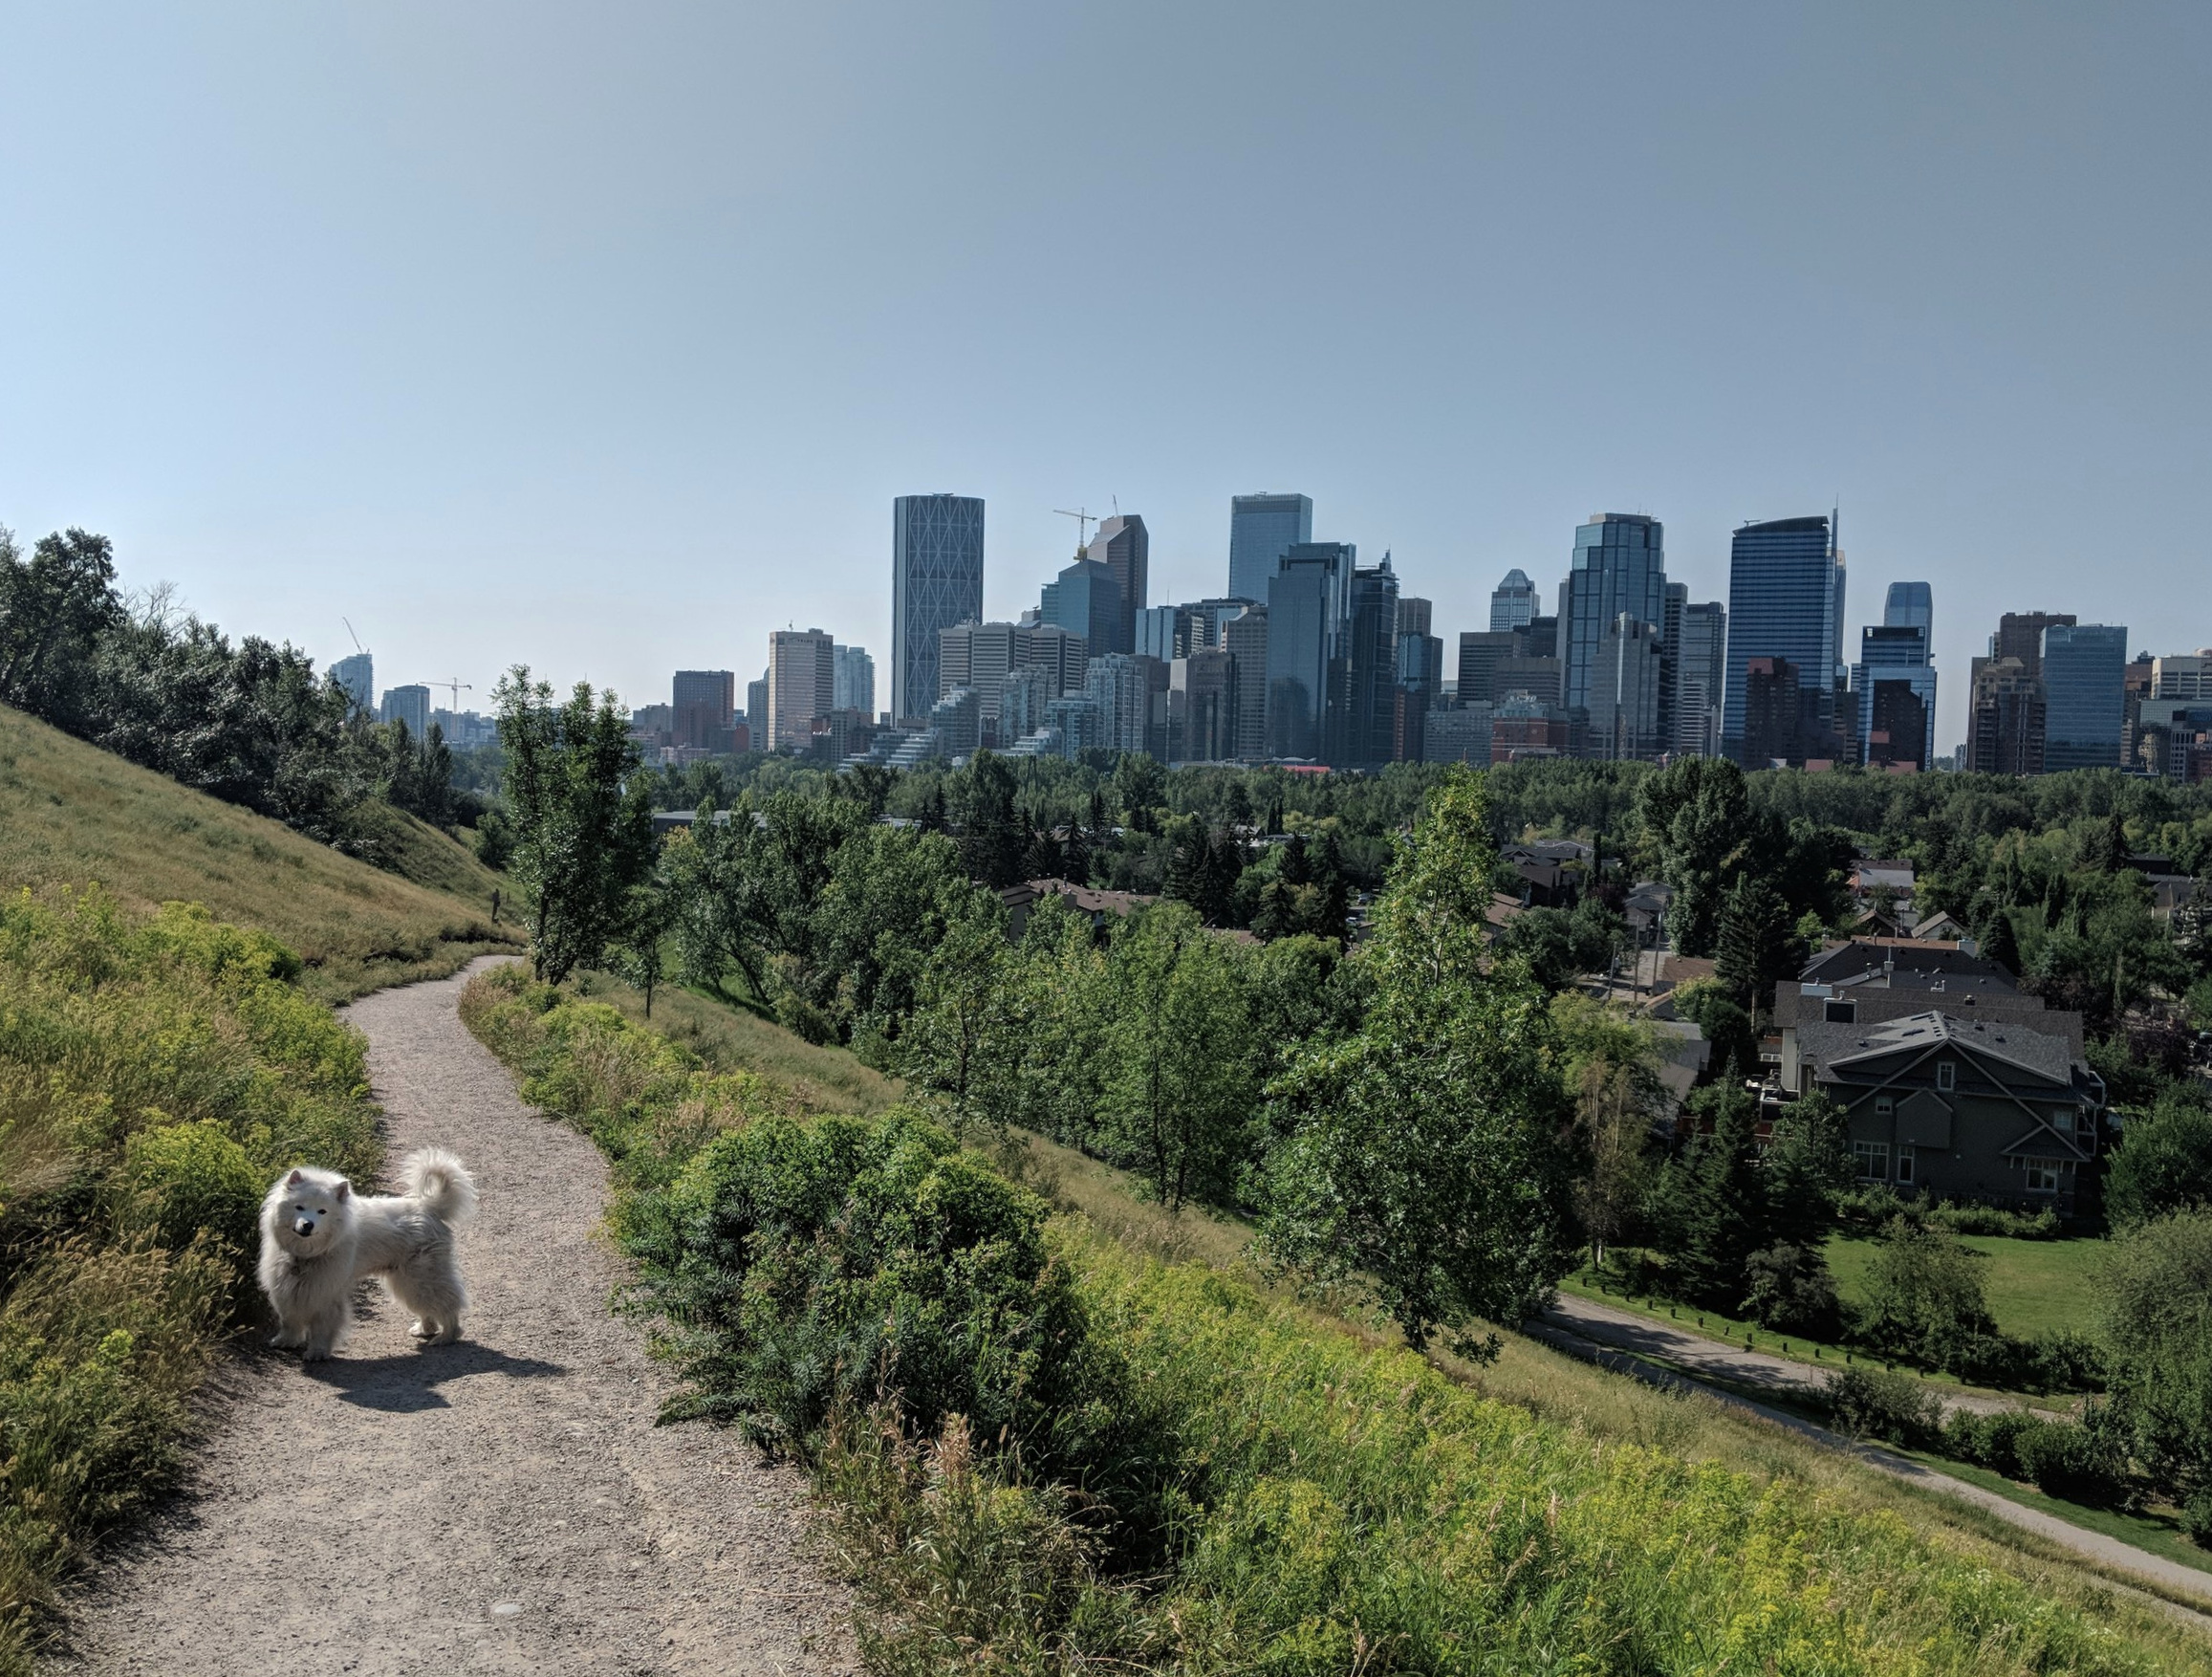 Walking trails + a dense layer of diverse plant species + relationship building with animals = The foundation for Calgary's biophilic culture. July, 2018.